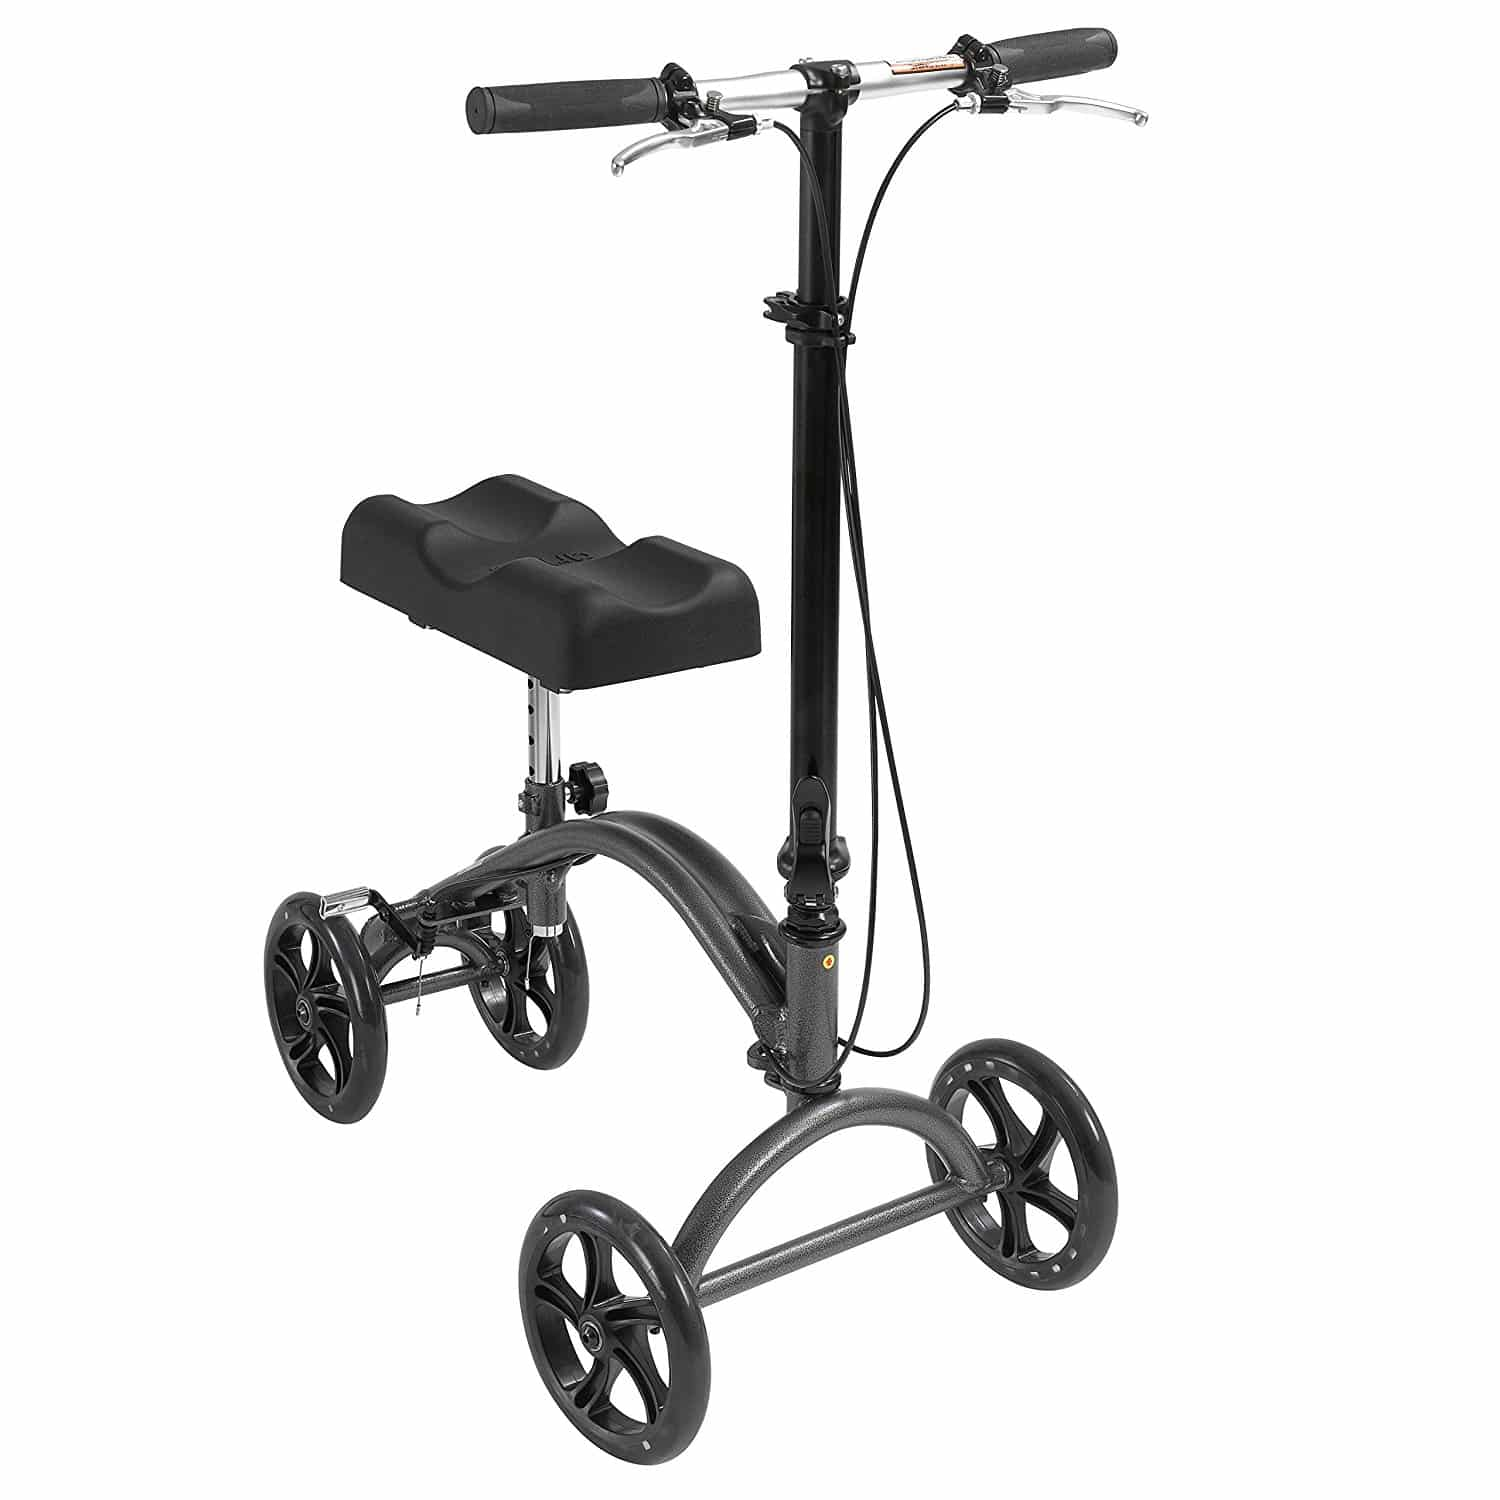 Best All Terrain KneeRover Steerable Knee Scooter Knee Walker Heavy Duty Crutches Alternative in Blue